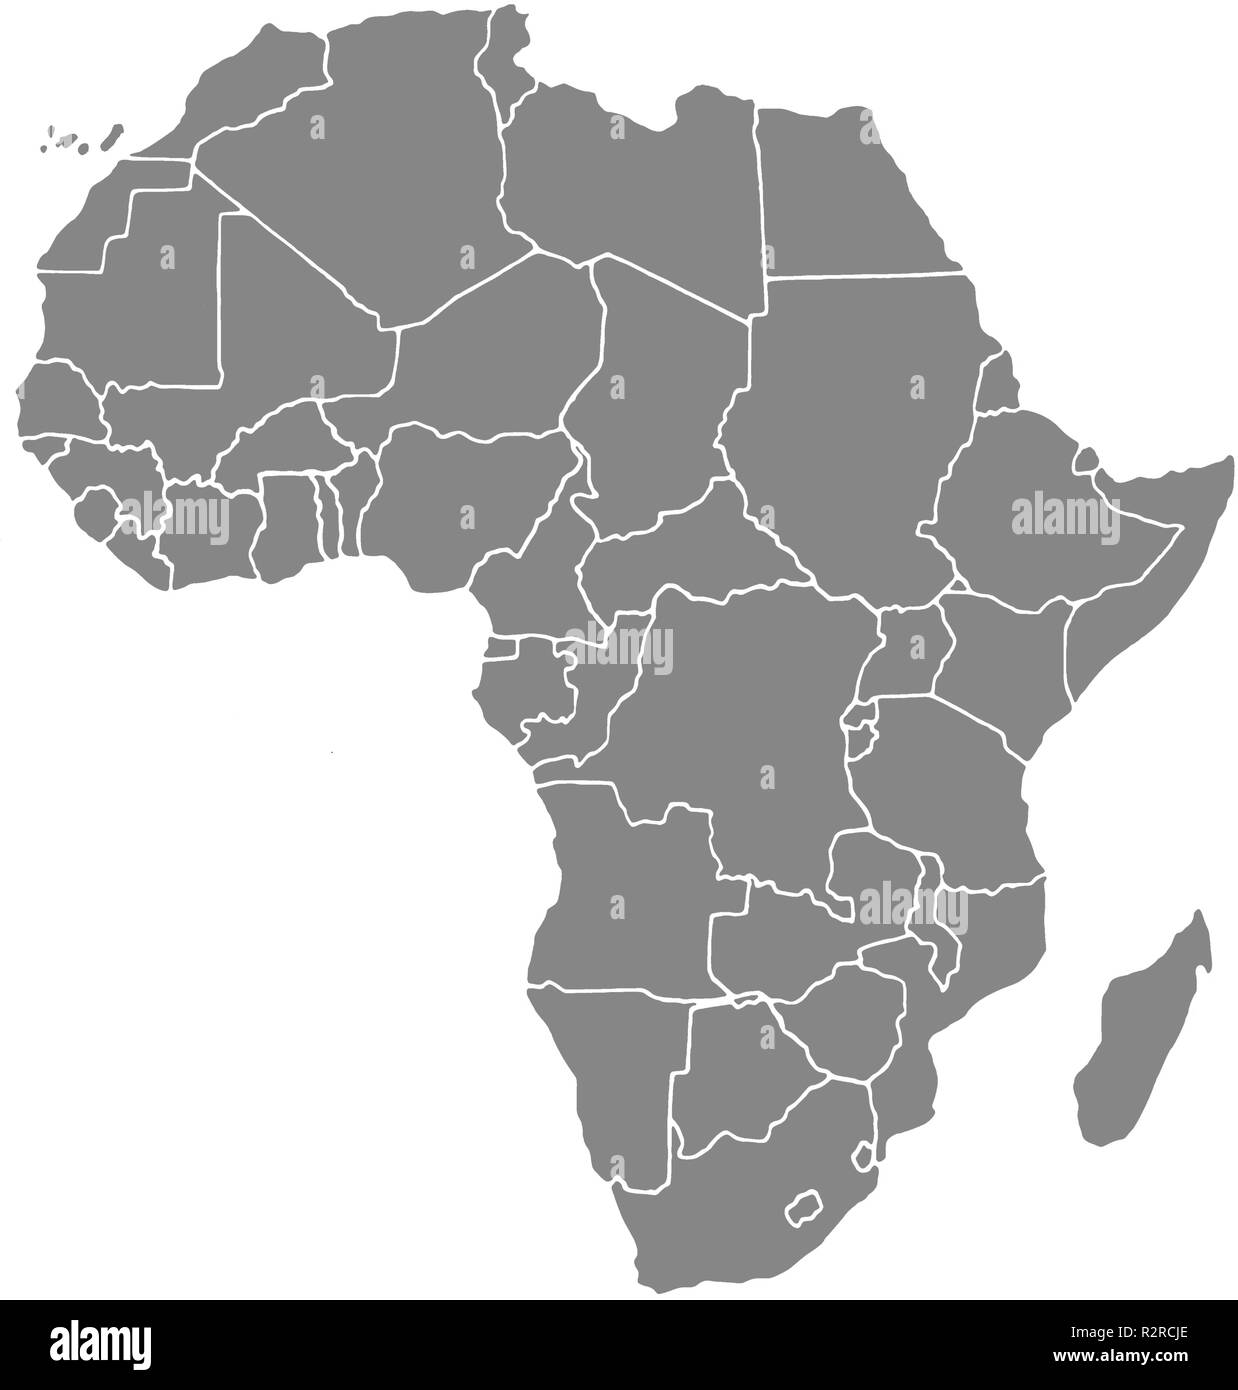 map africa - Stock Image